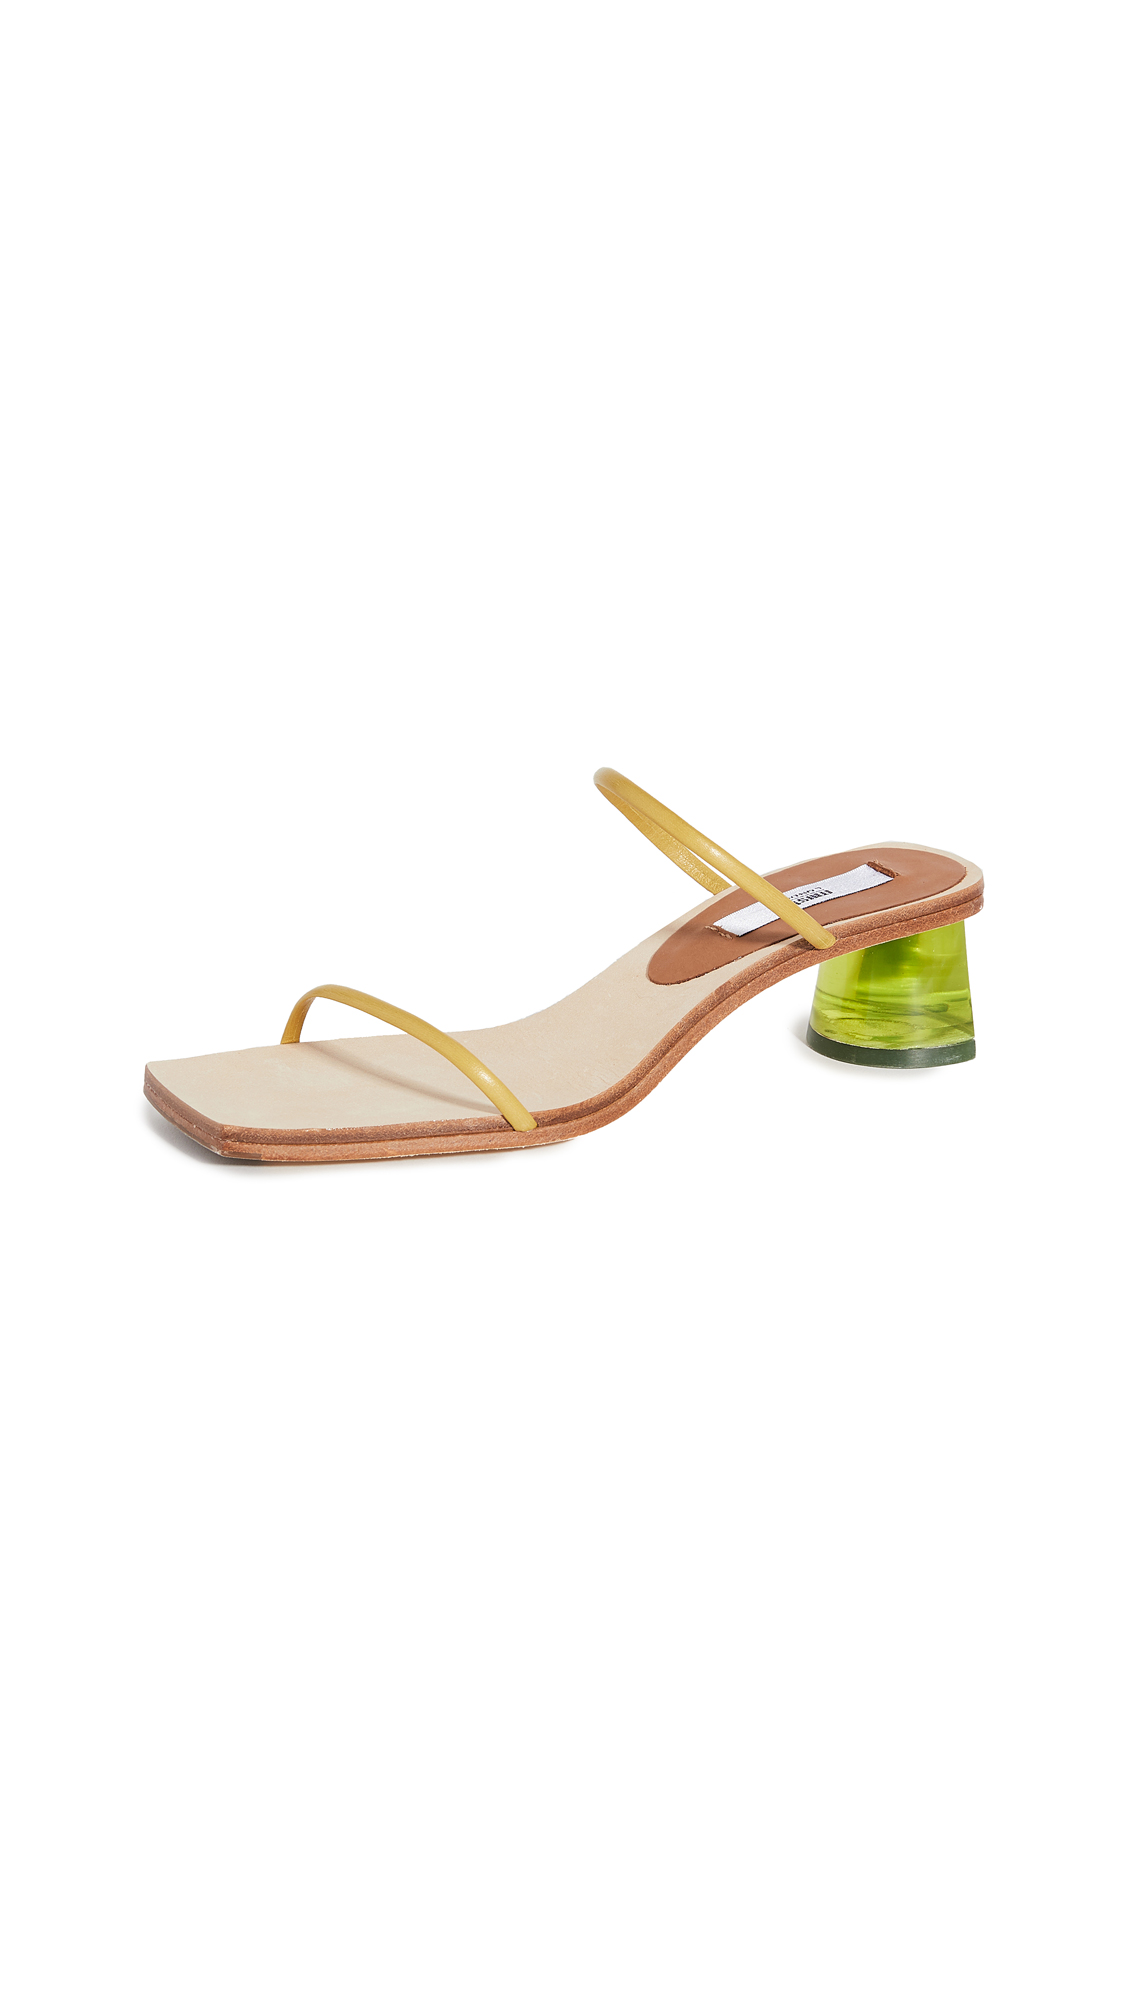 Buy Miista Ellie Slides online, shop Miista